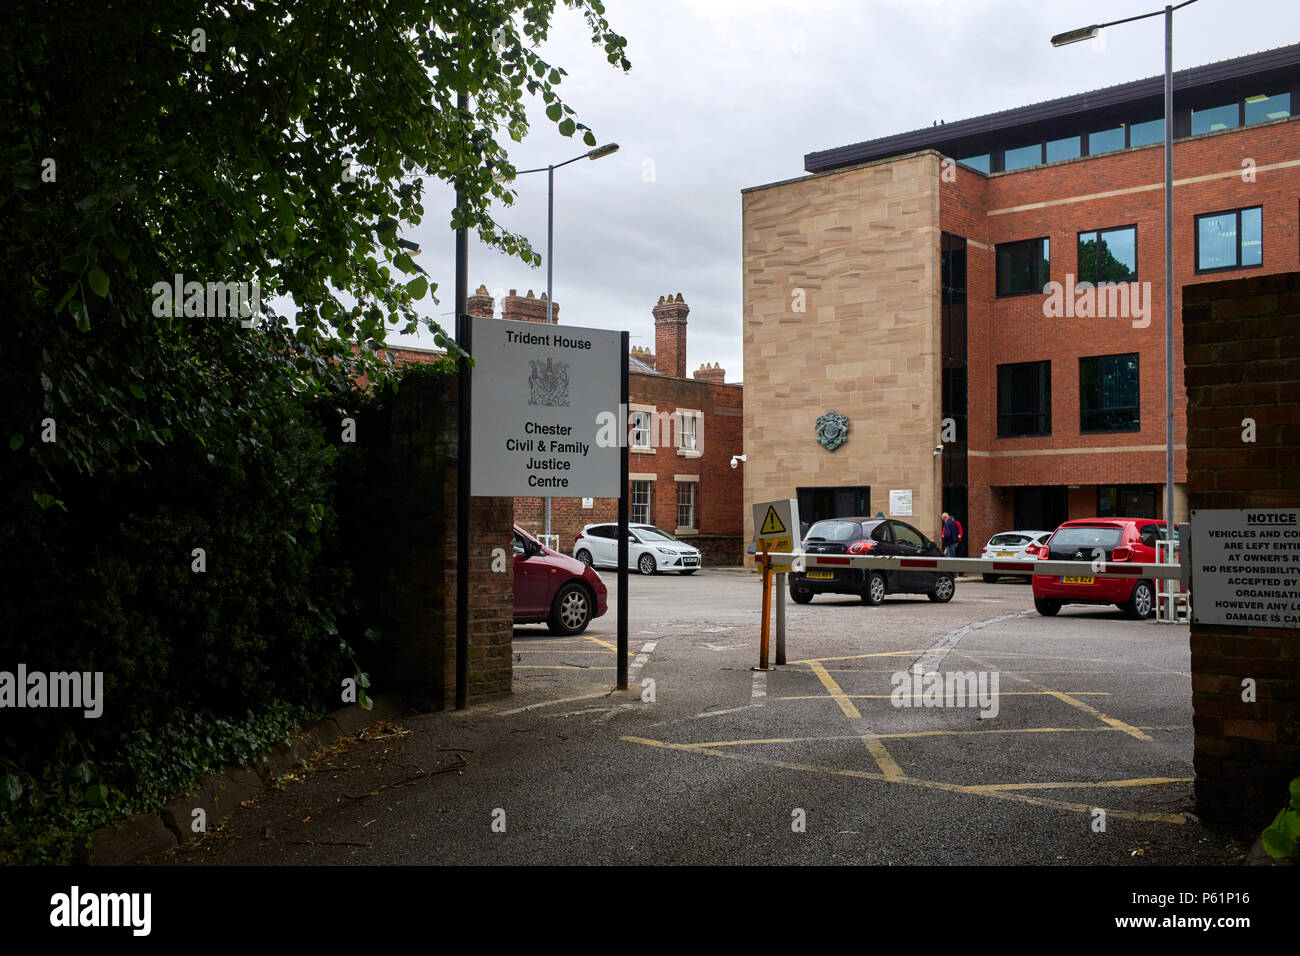 Trident House the Chester Civil and Family Justice Centre - Stock Image